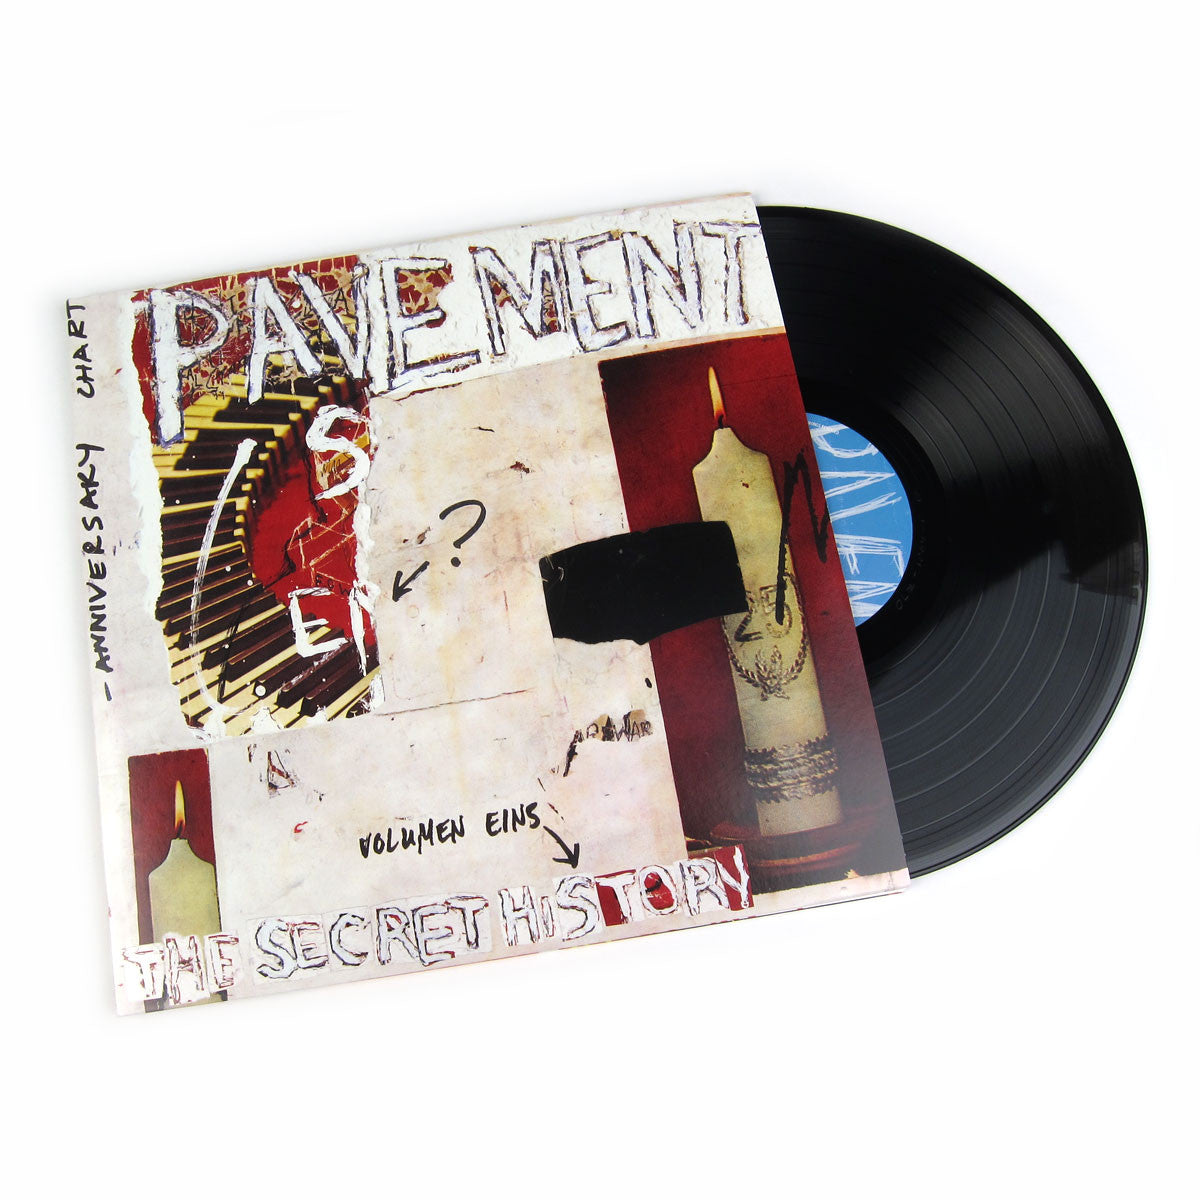 Pavement: The Secret History Vol.1 Vinyl 2LP